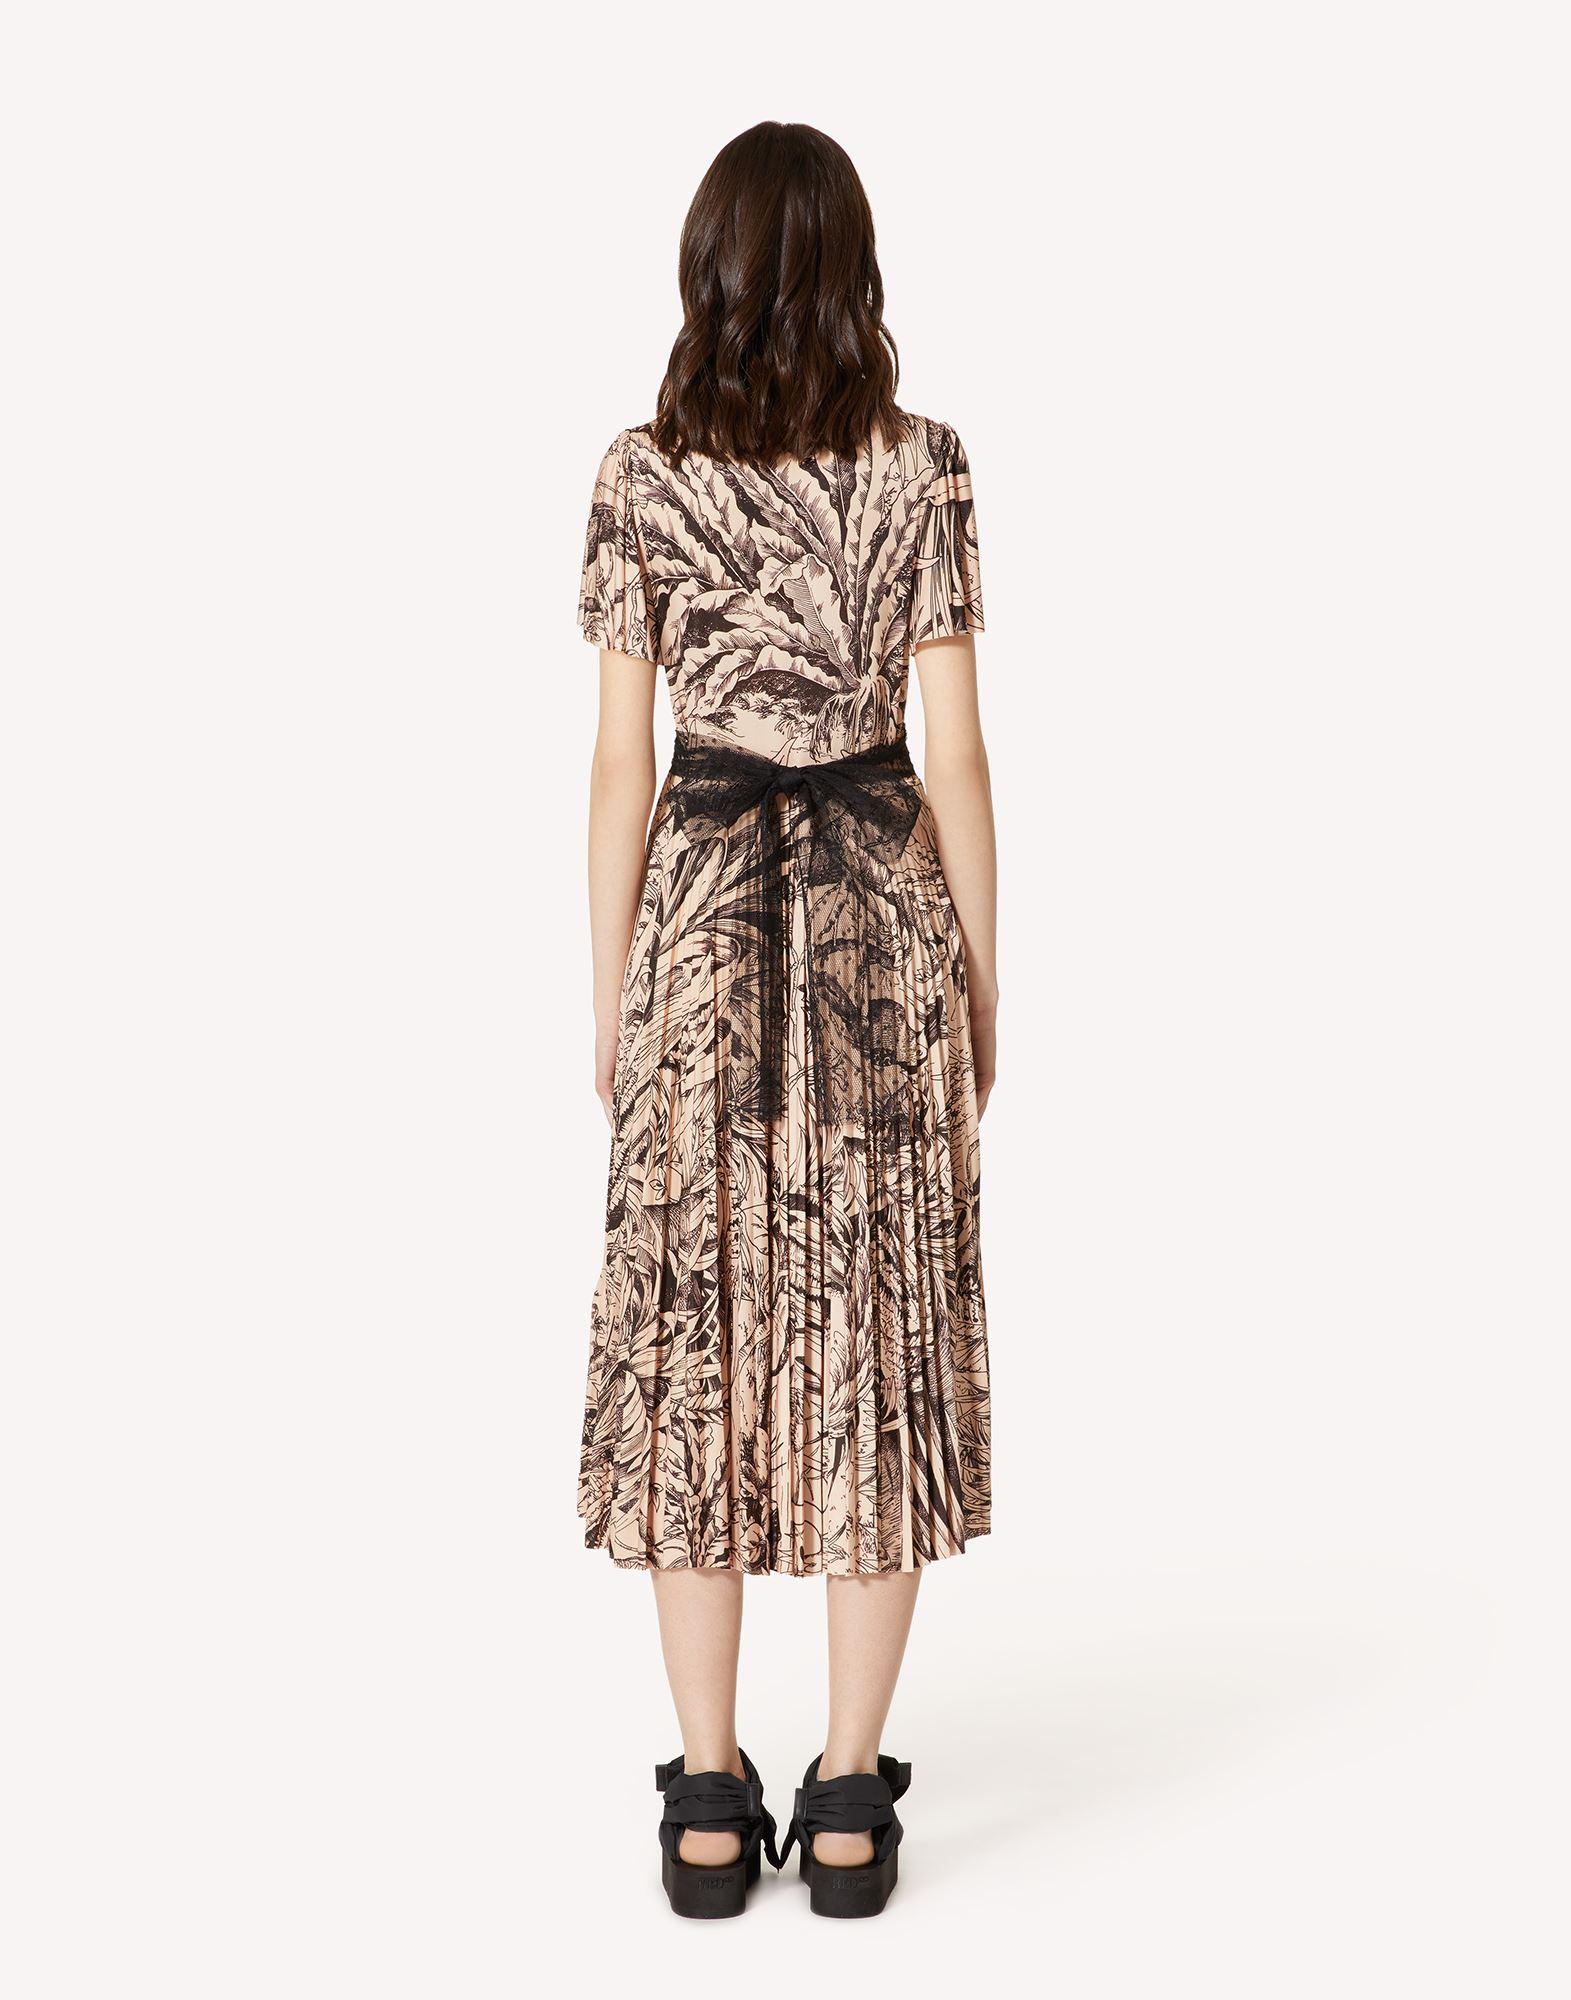 JERSEY DRESS WITH JUNGLE TOILE PRINT 1